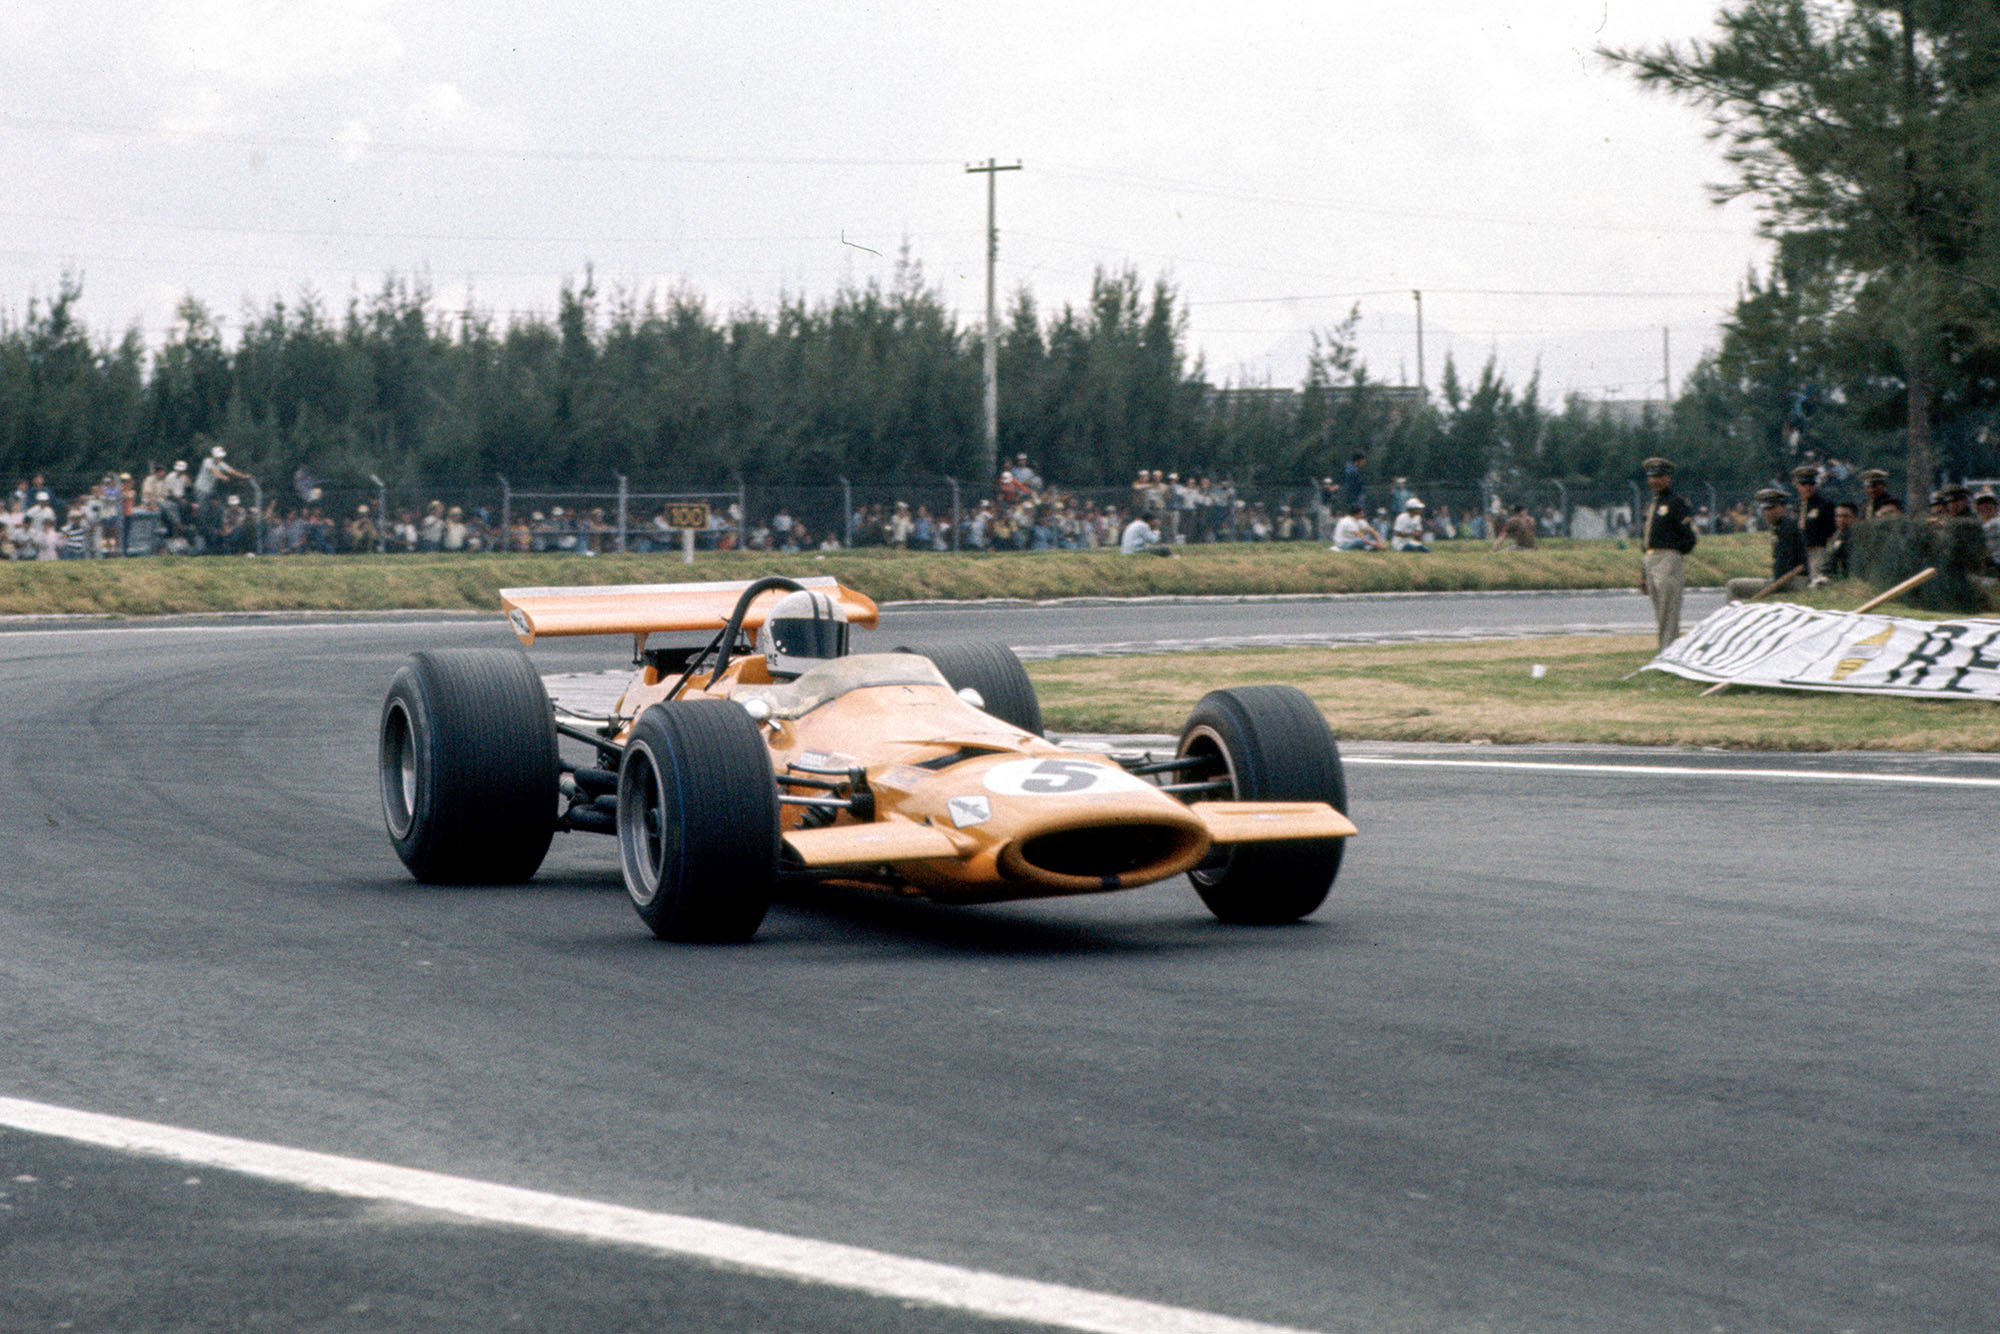 Denny Hulme in his McLaren at the 1969 Mexican Grand Prix